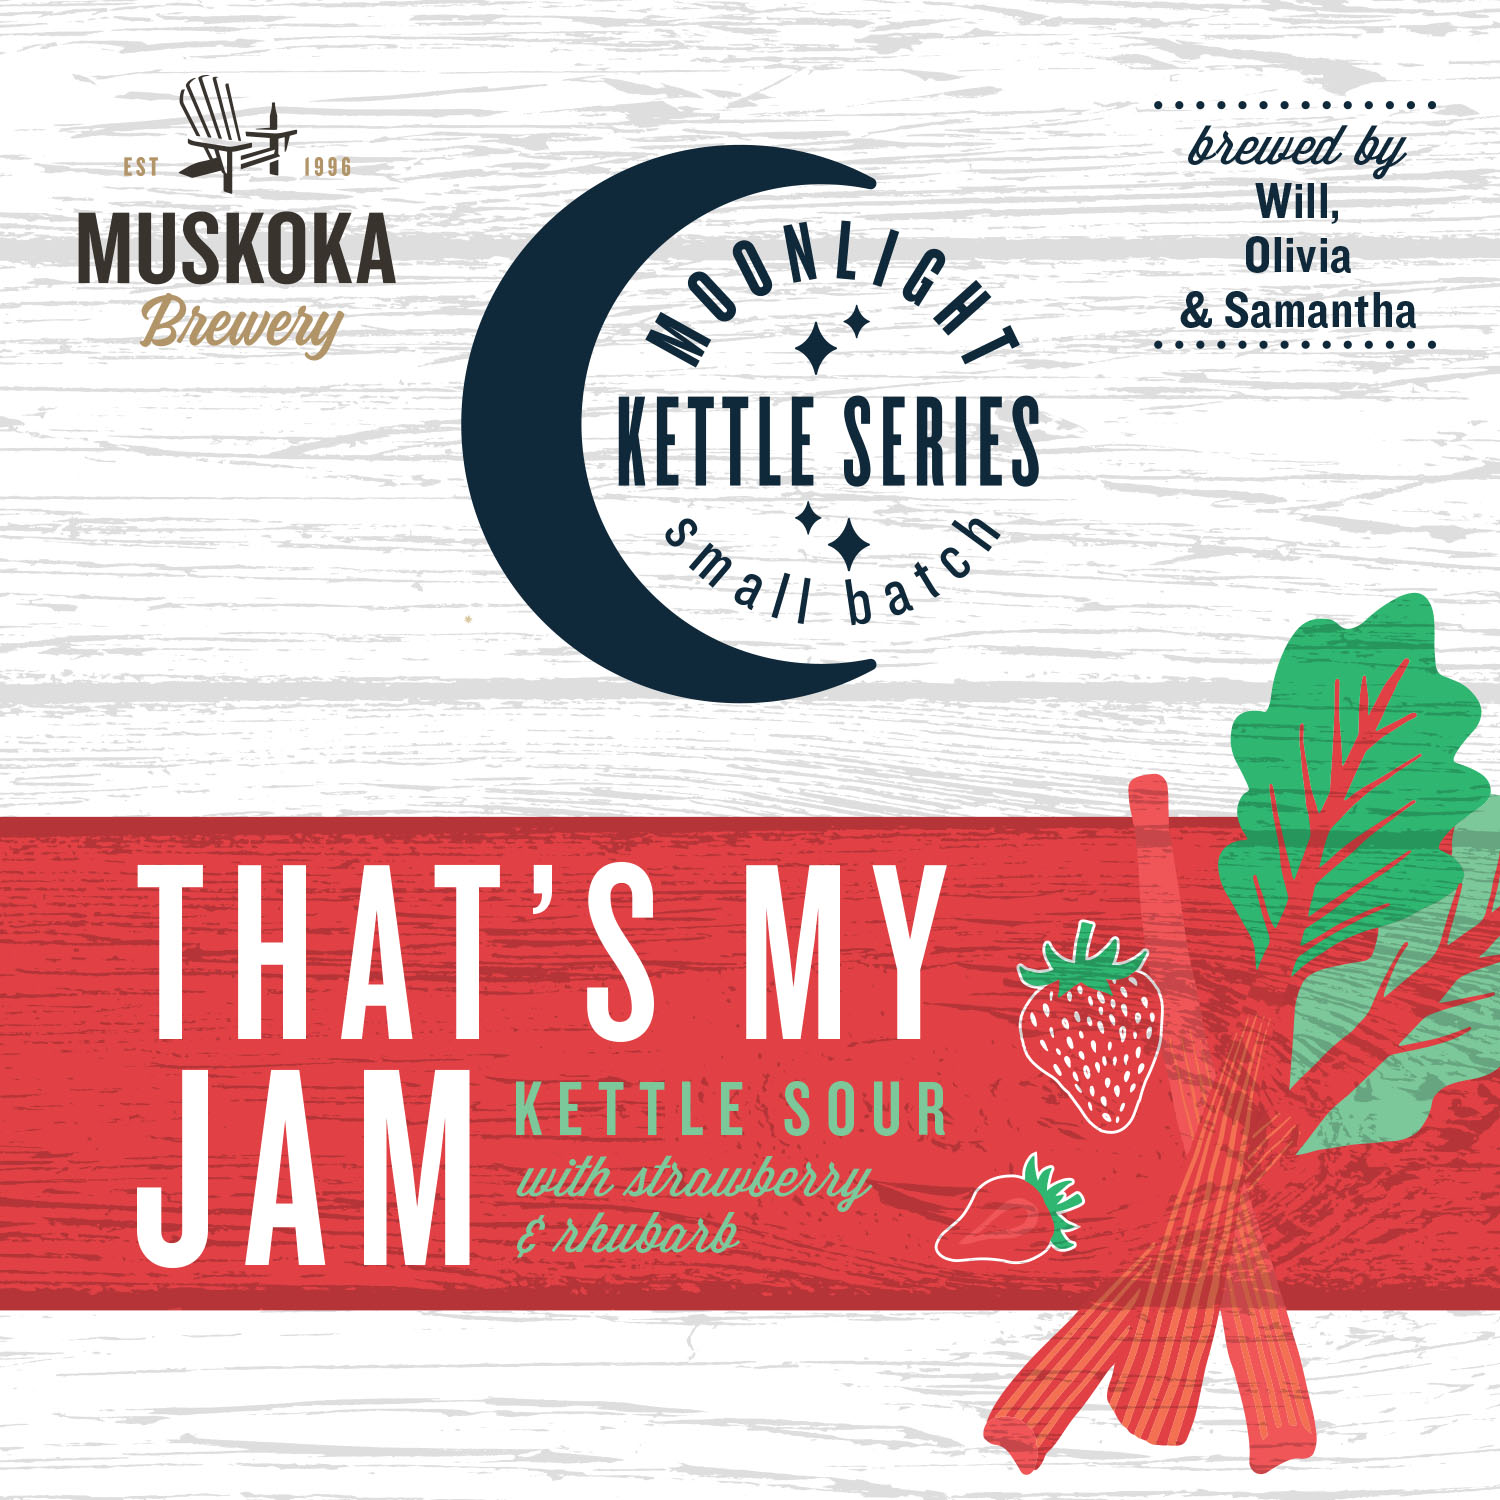 Moonlight Kettle That's My Jam with Strawberry and rhubarb